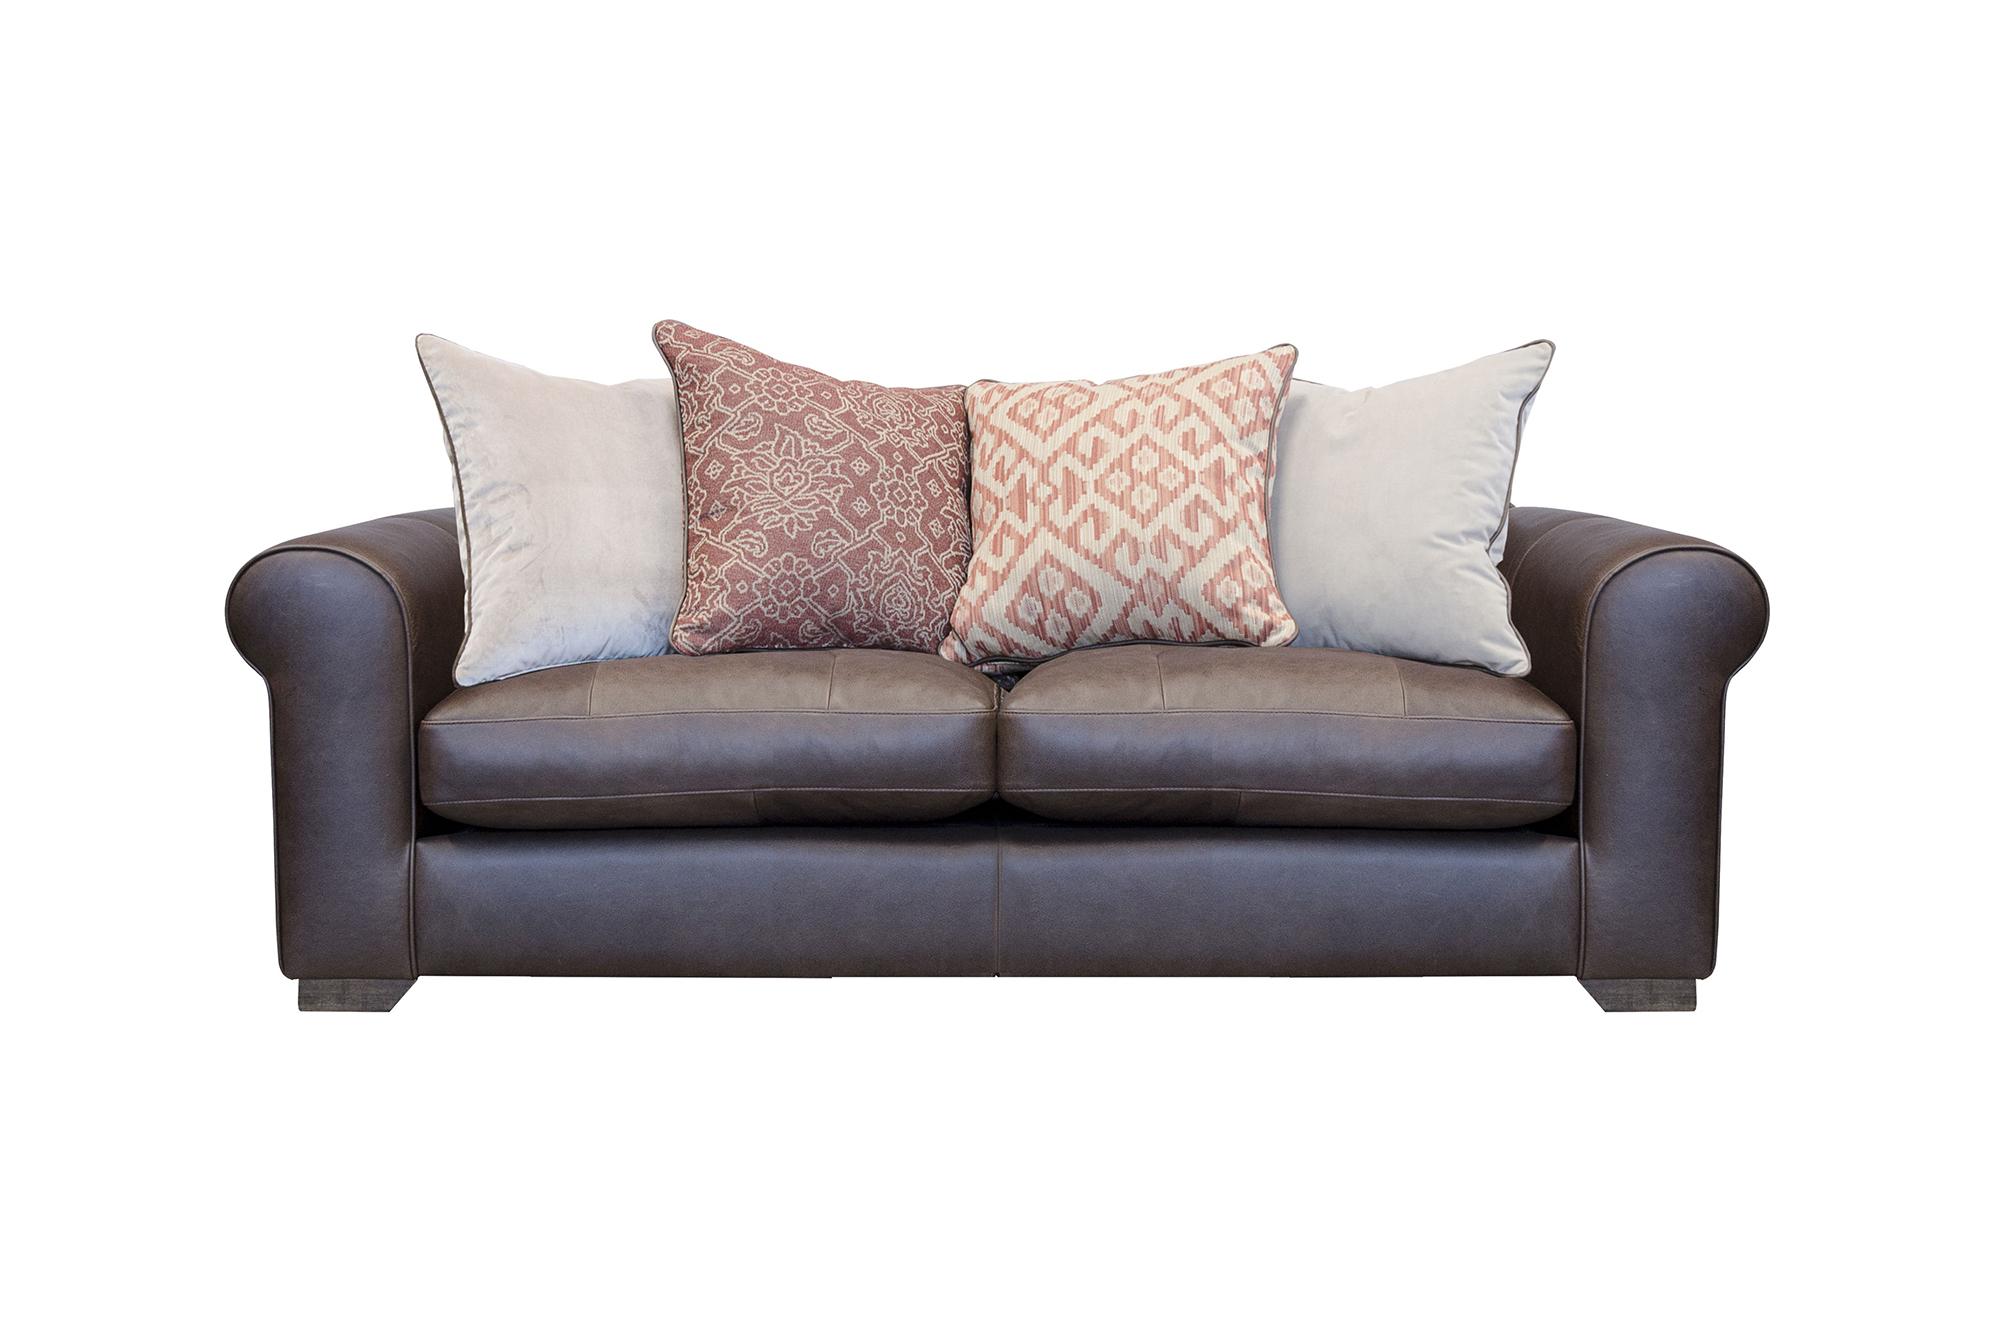 Pemberley Midi Sofa Shown in Indiana Tan with Fabric Option 1